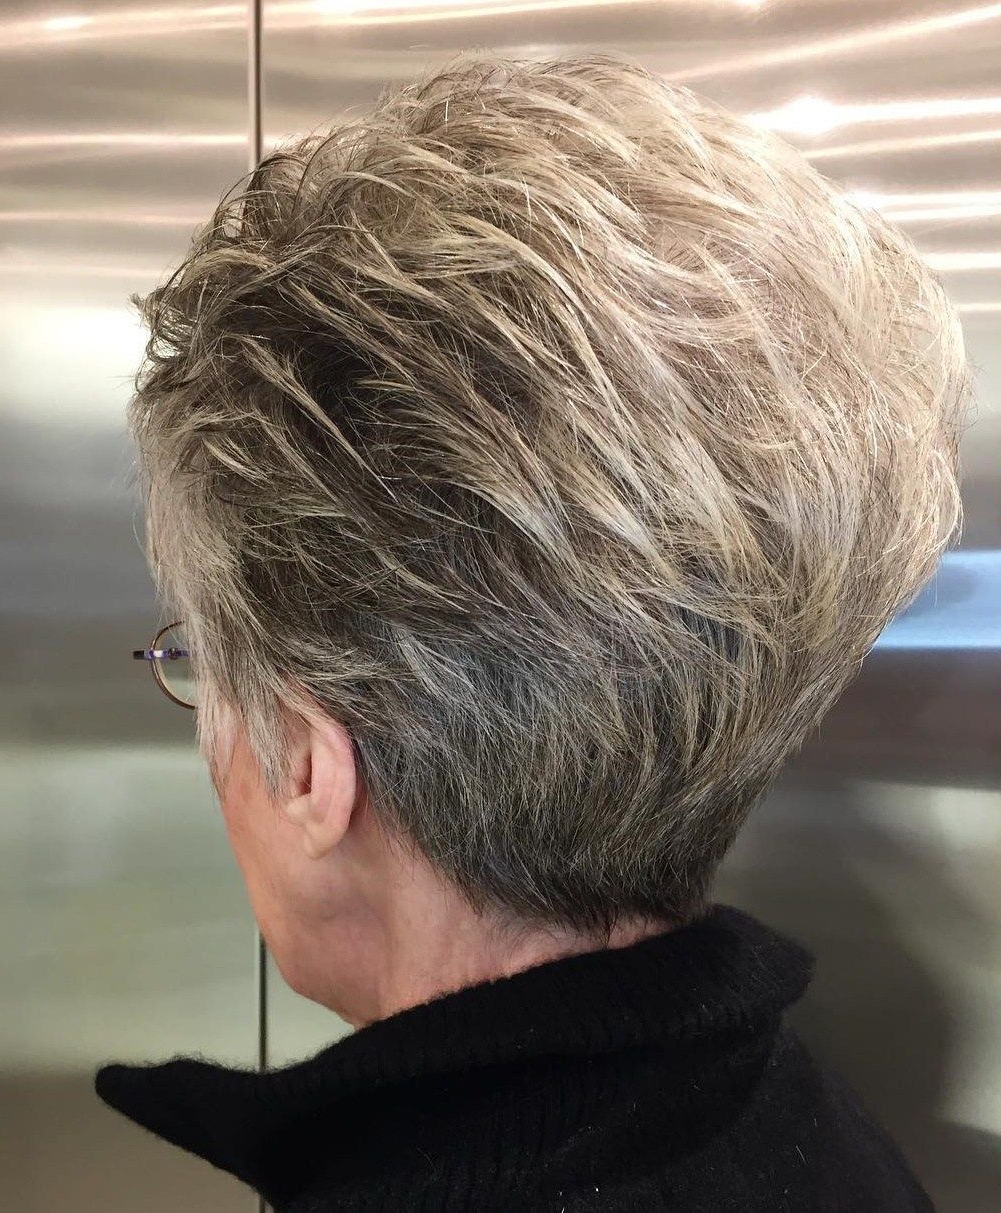 90 Classy And Simple Short Hairstyles For Women Over 50 | Pixies Inside Short Voluminous Feathered Hairstyles (Gallery 14 of 20)